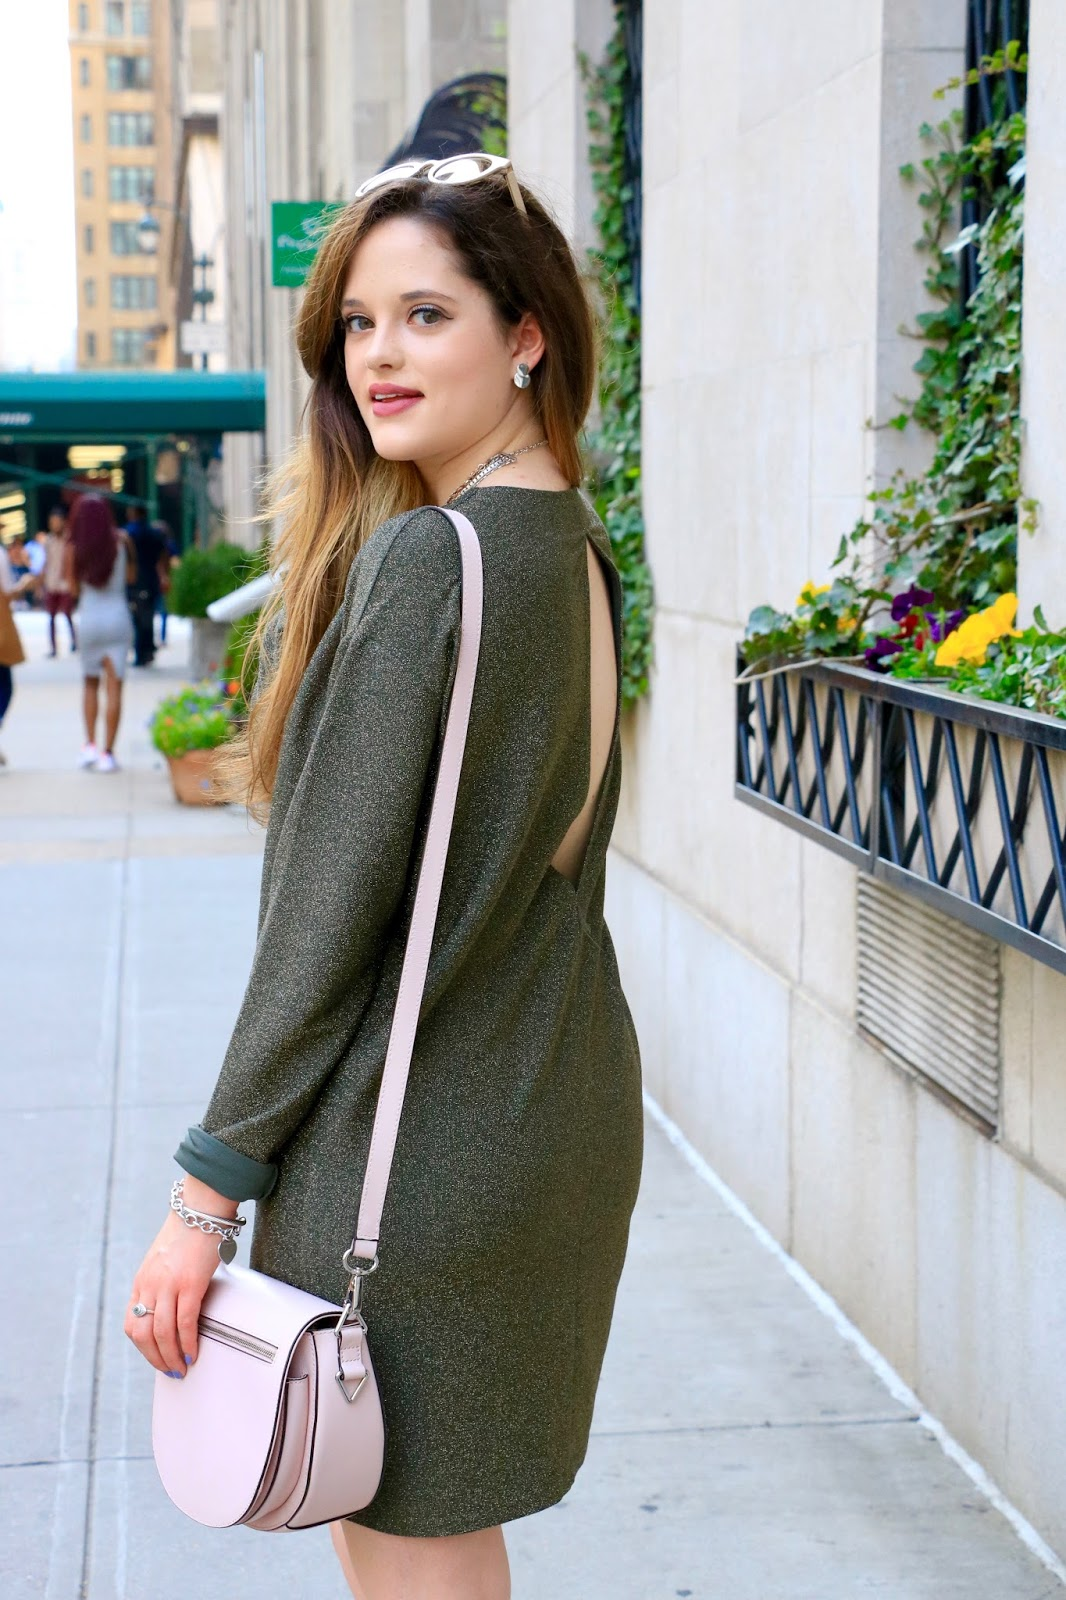 Fashion blogger Kathleen Harper wearing an open-back dress